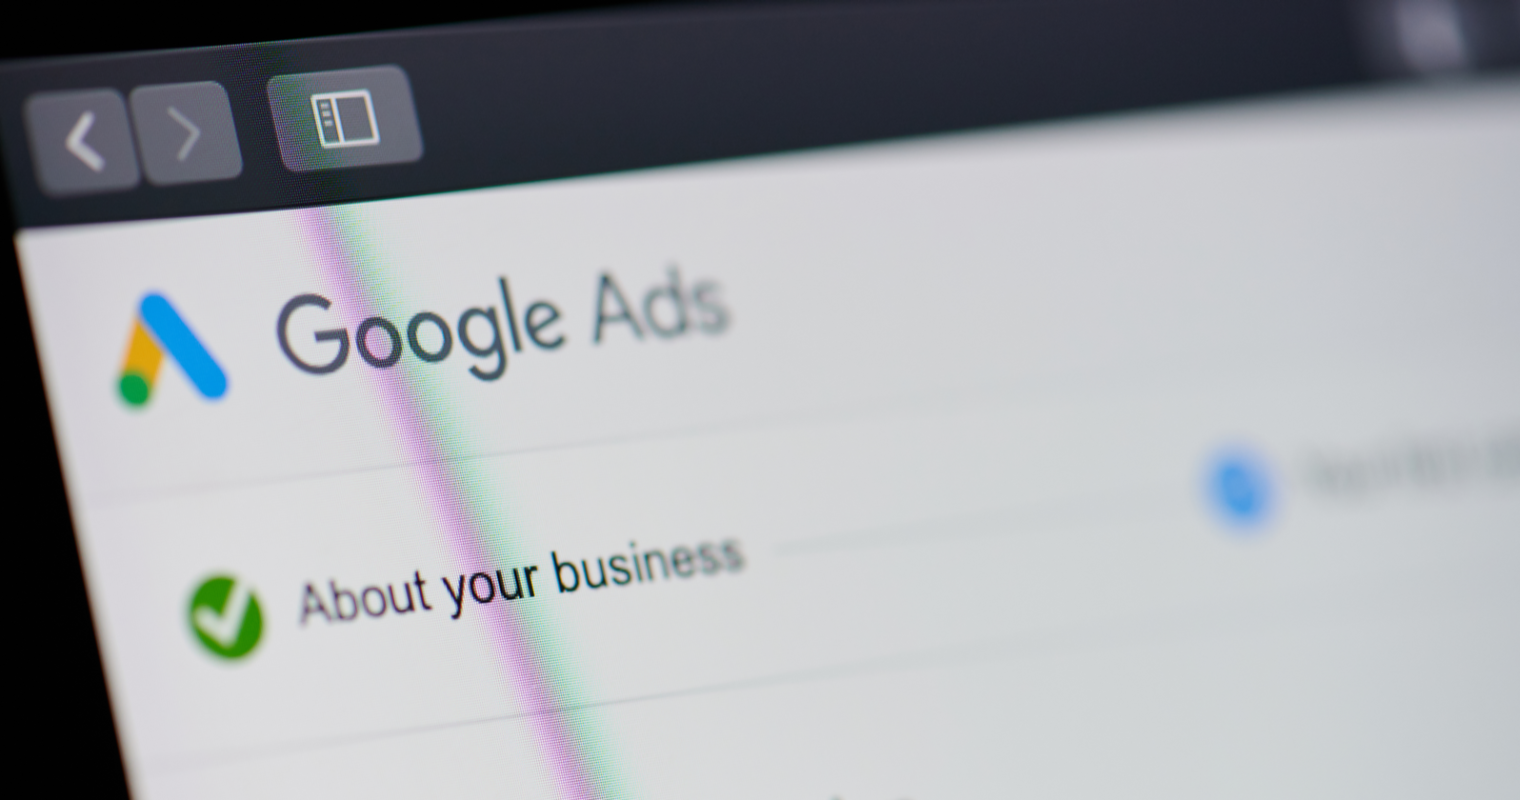 8 Simple Google Ads Tips That Will Make You More Money